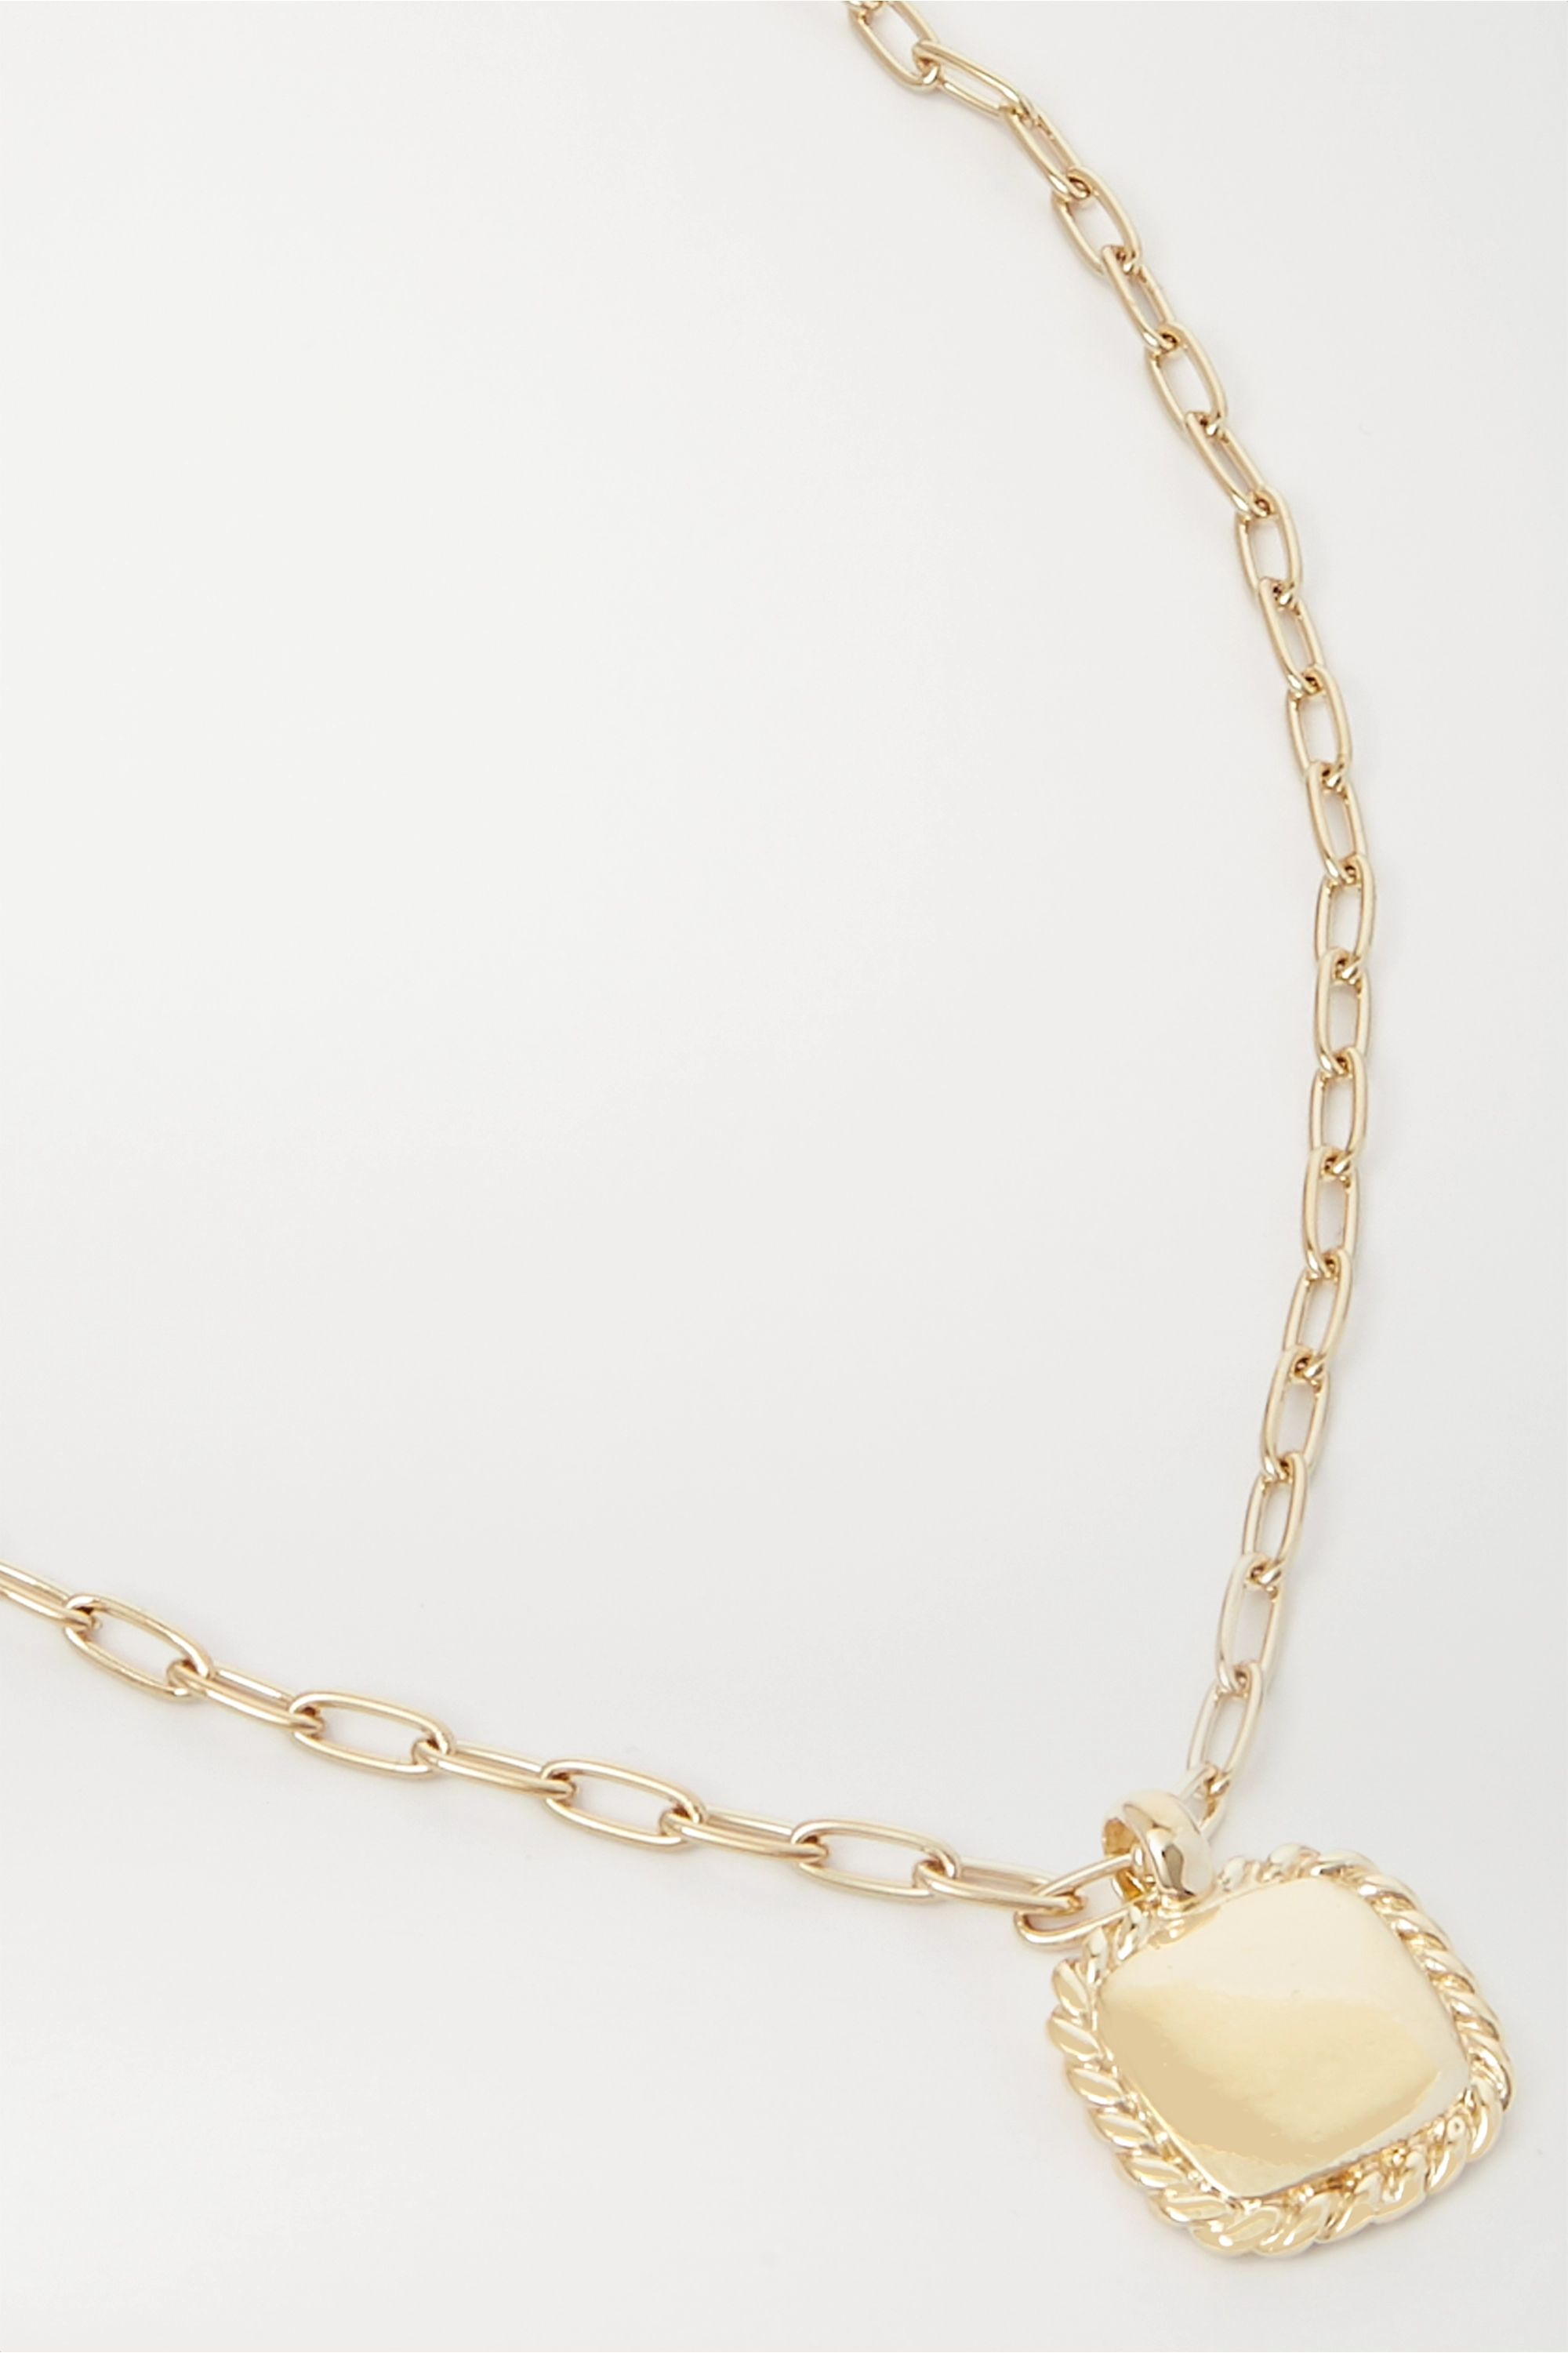 Laura Lombardi + NET SUSTAIN Stella gold-plated necklace